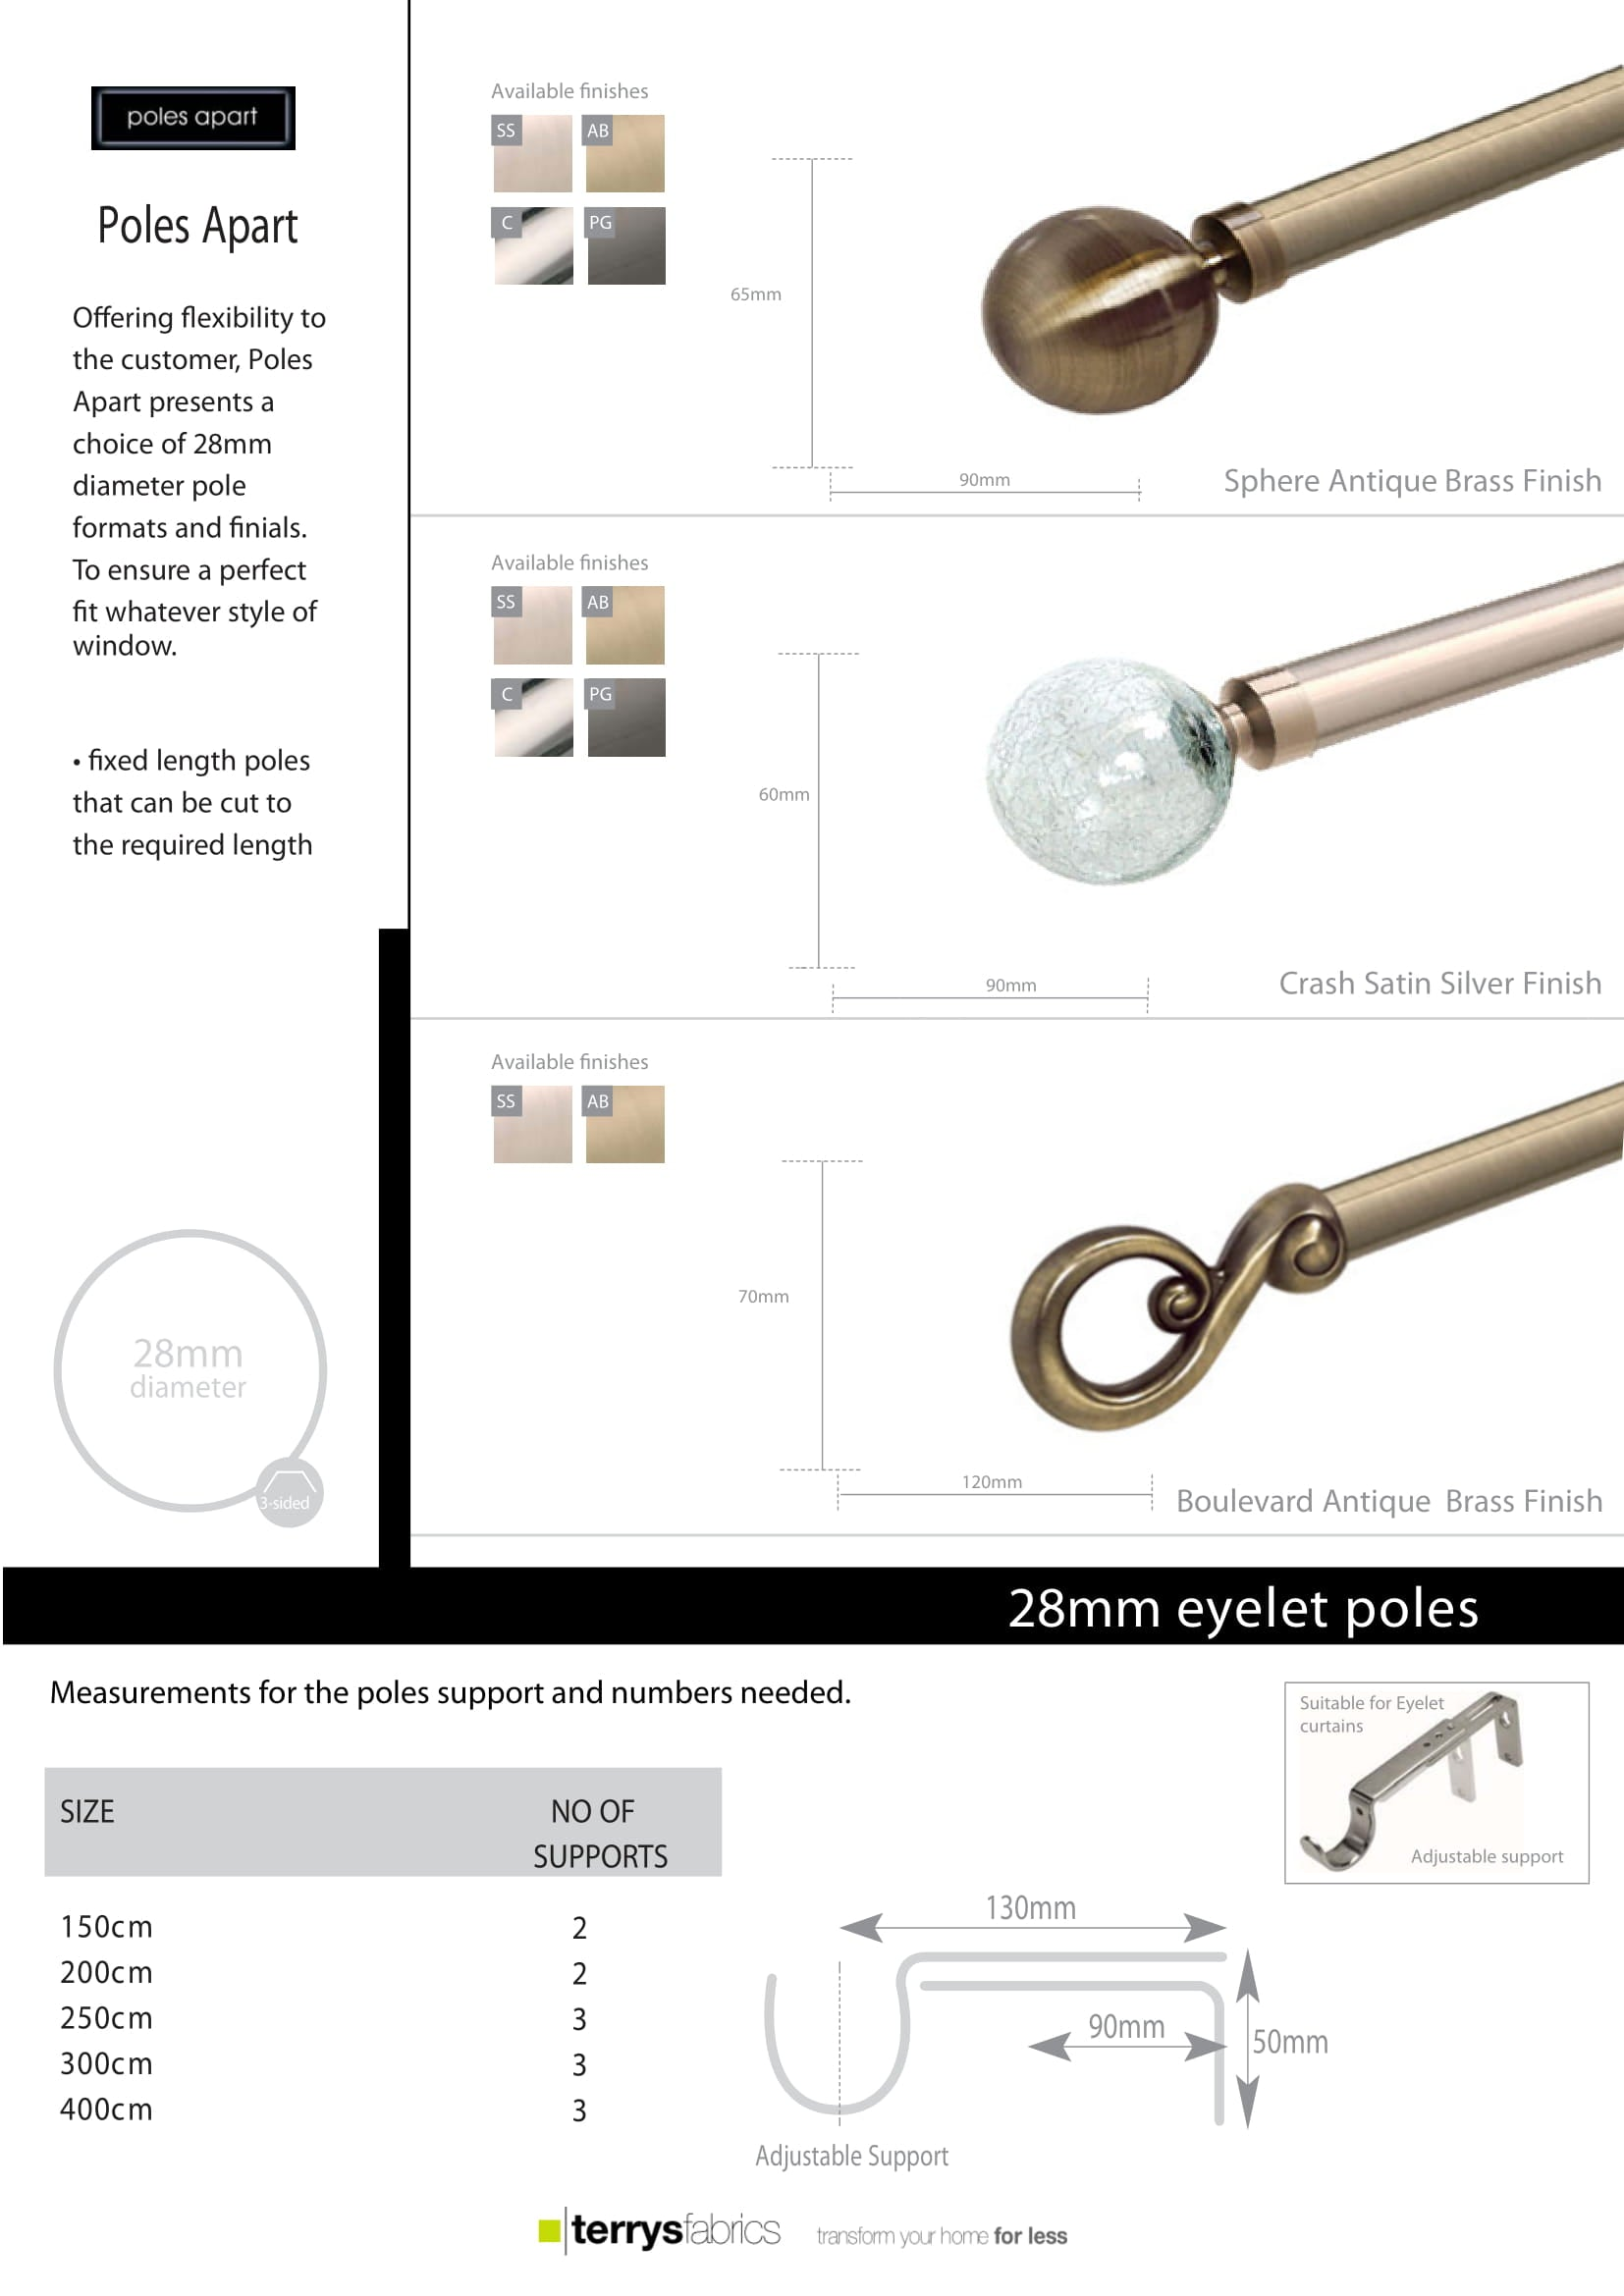 Ball Crash Boulevard Eyelet Pole Product Details And Fitting Instructions One